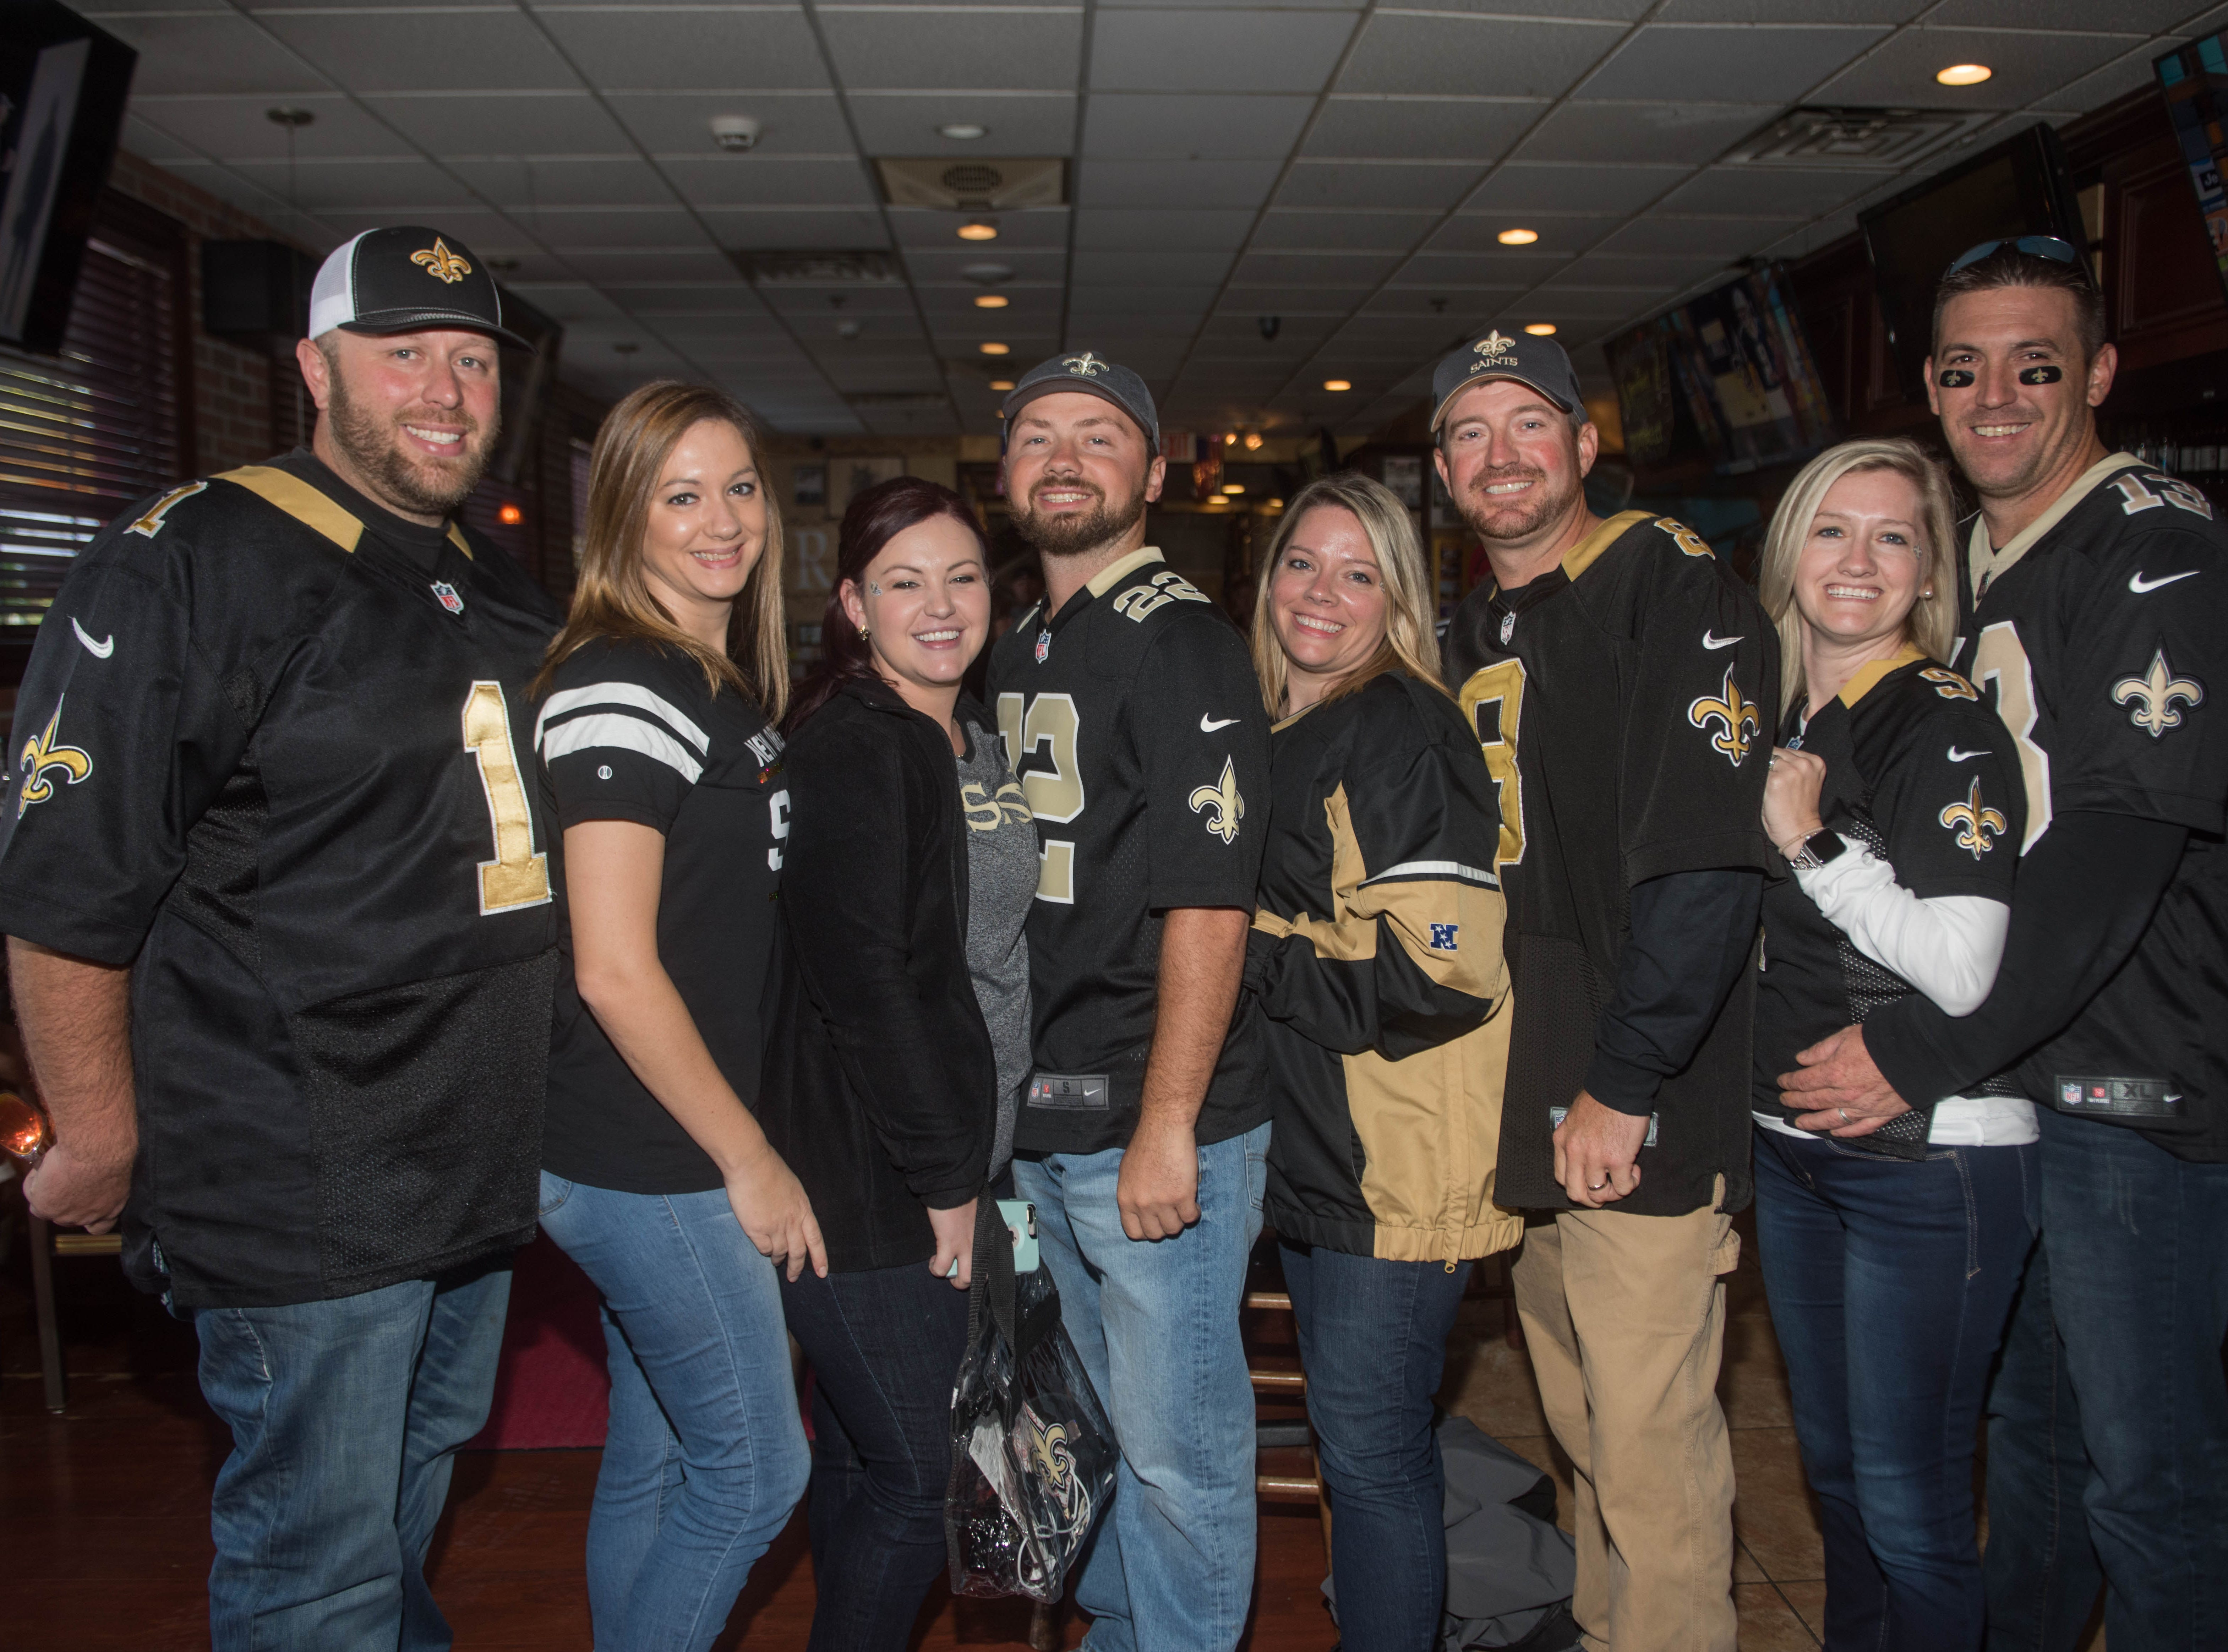 Taylor, Kelly, Tiffany, Ethan, Lacey, Derrick, Amy and Lance. The Record sports writers Art Stapleton and Dave Rivera joined fans at Redd's to talk Giants and Saints before the game. 09/30/2018